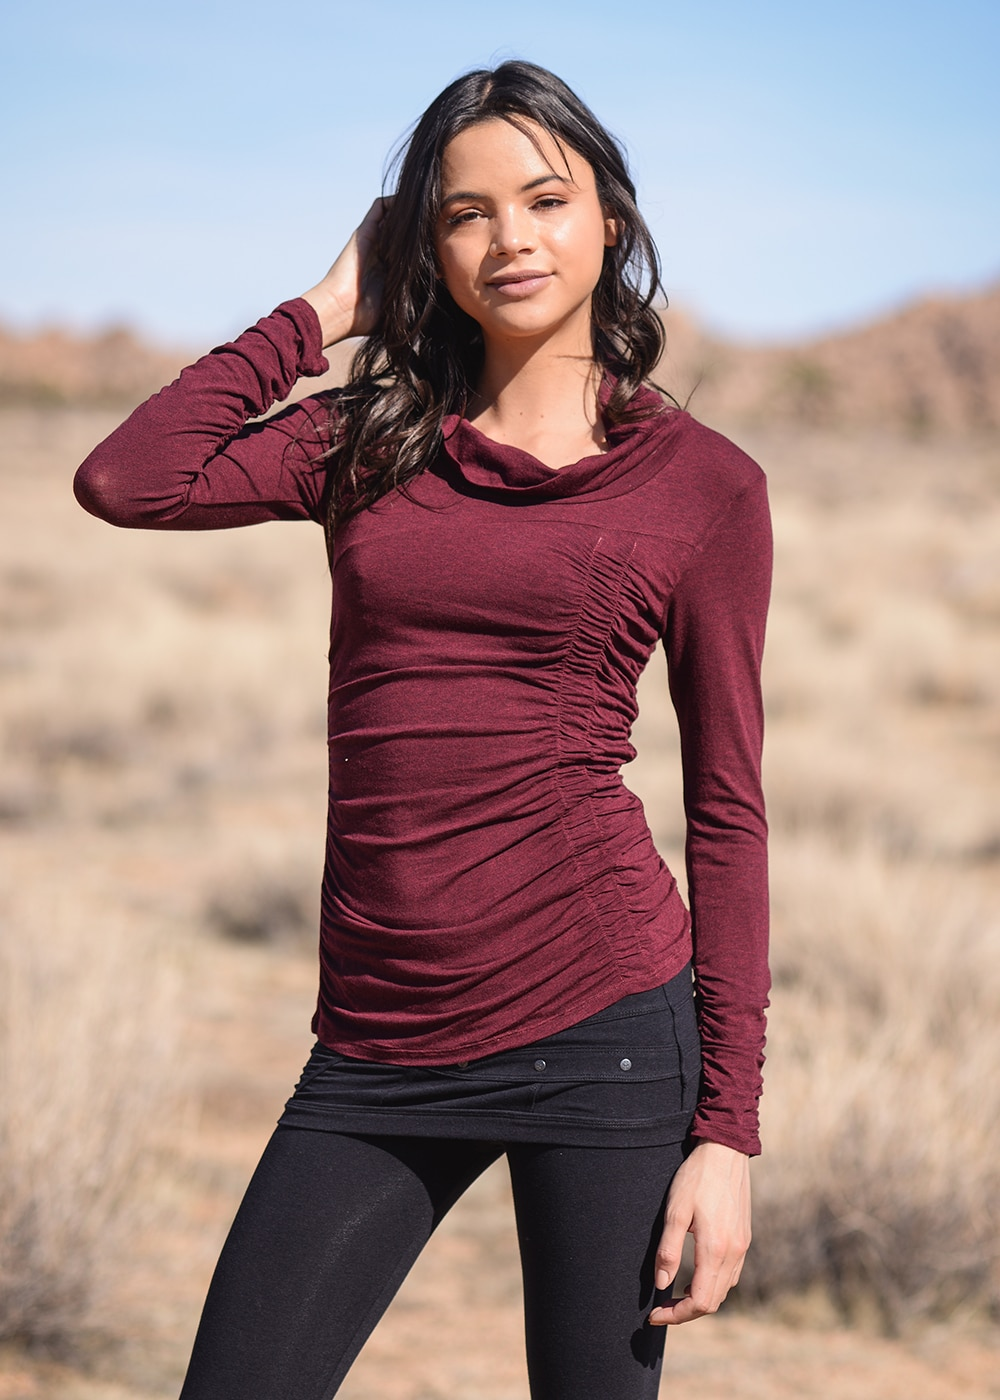 Bamboo and Organic Cotton Willow Tee in Red by Nomads Hemp Wear